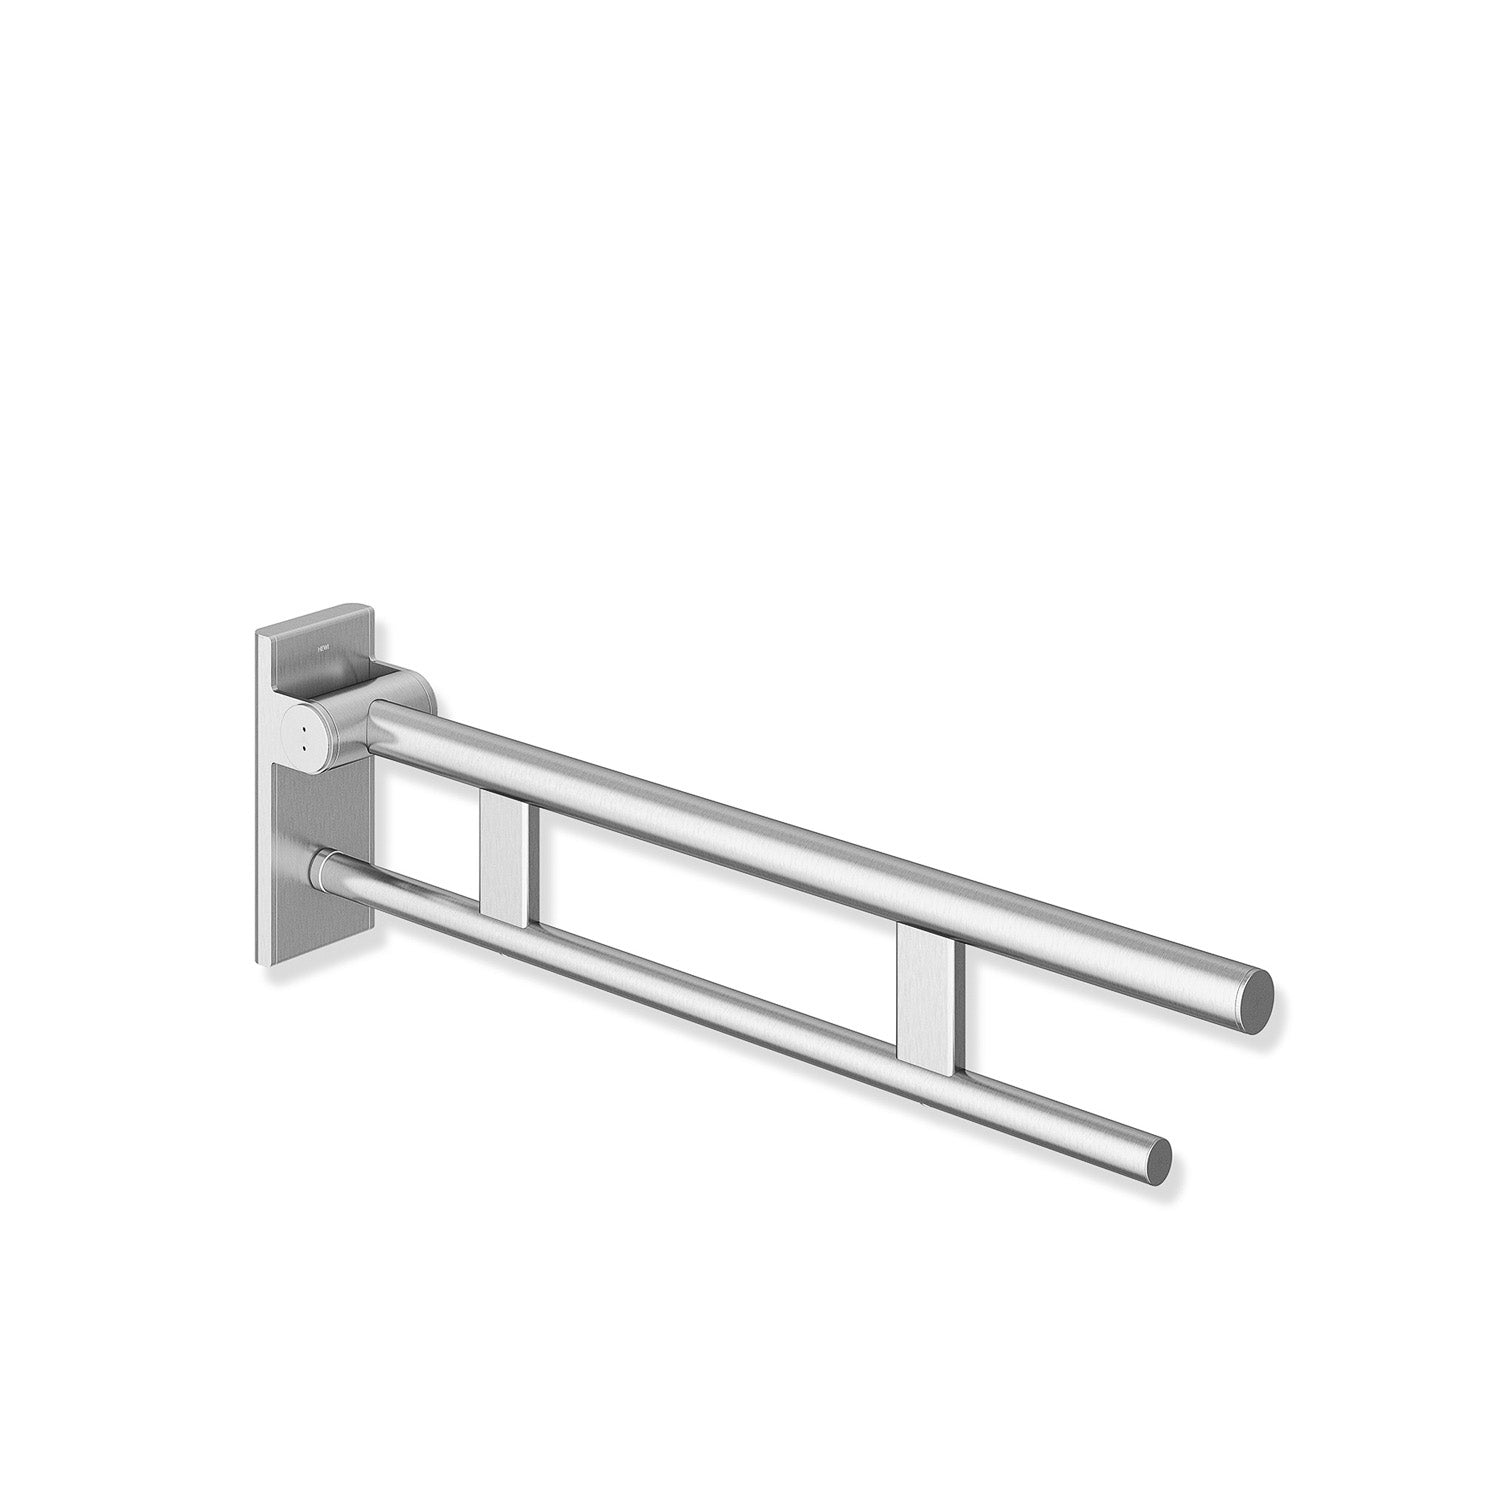 600mm Freestyle Removable Hinged Grab Rail with a satin steel finish on a white background